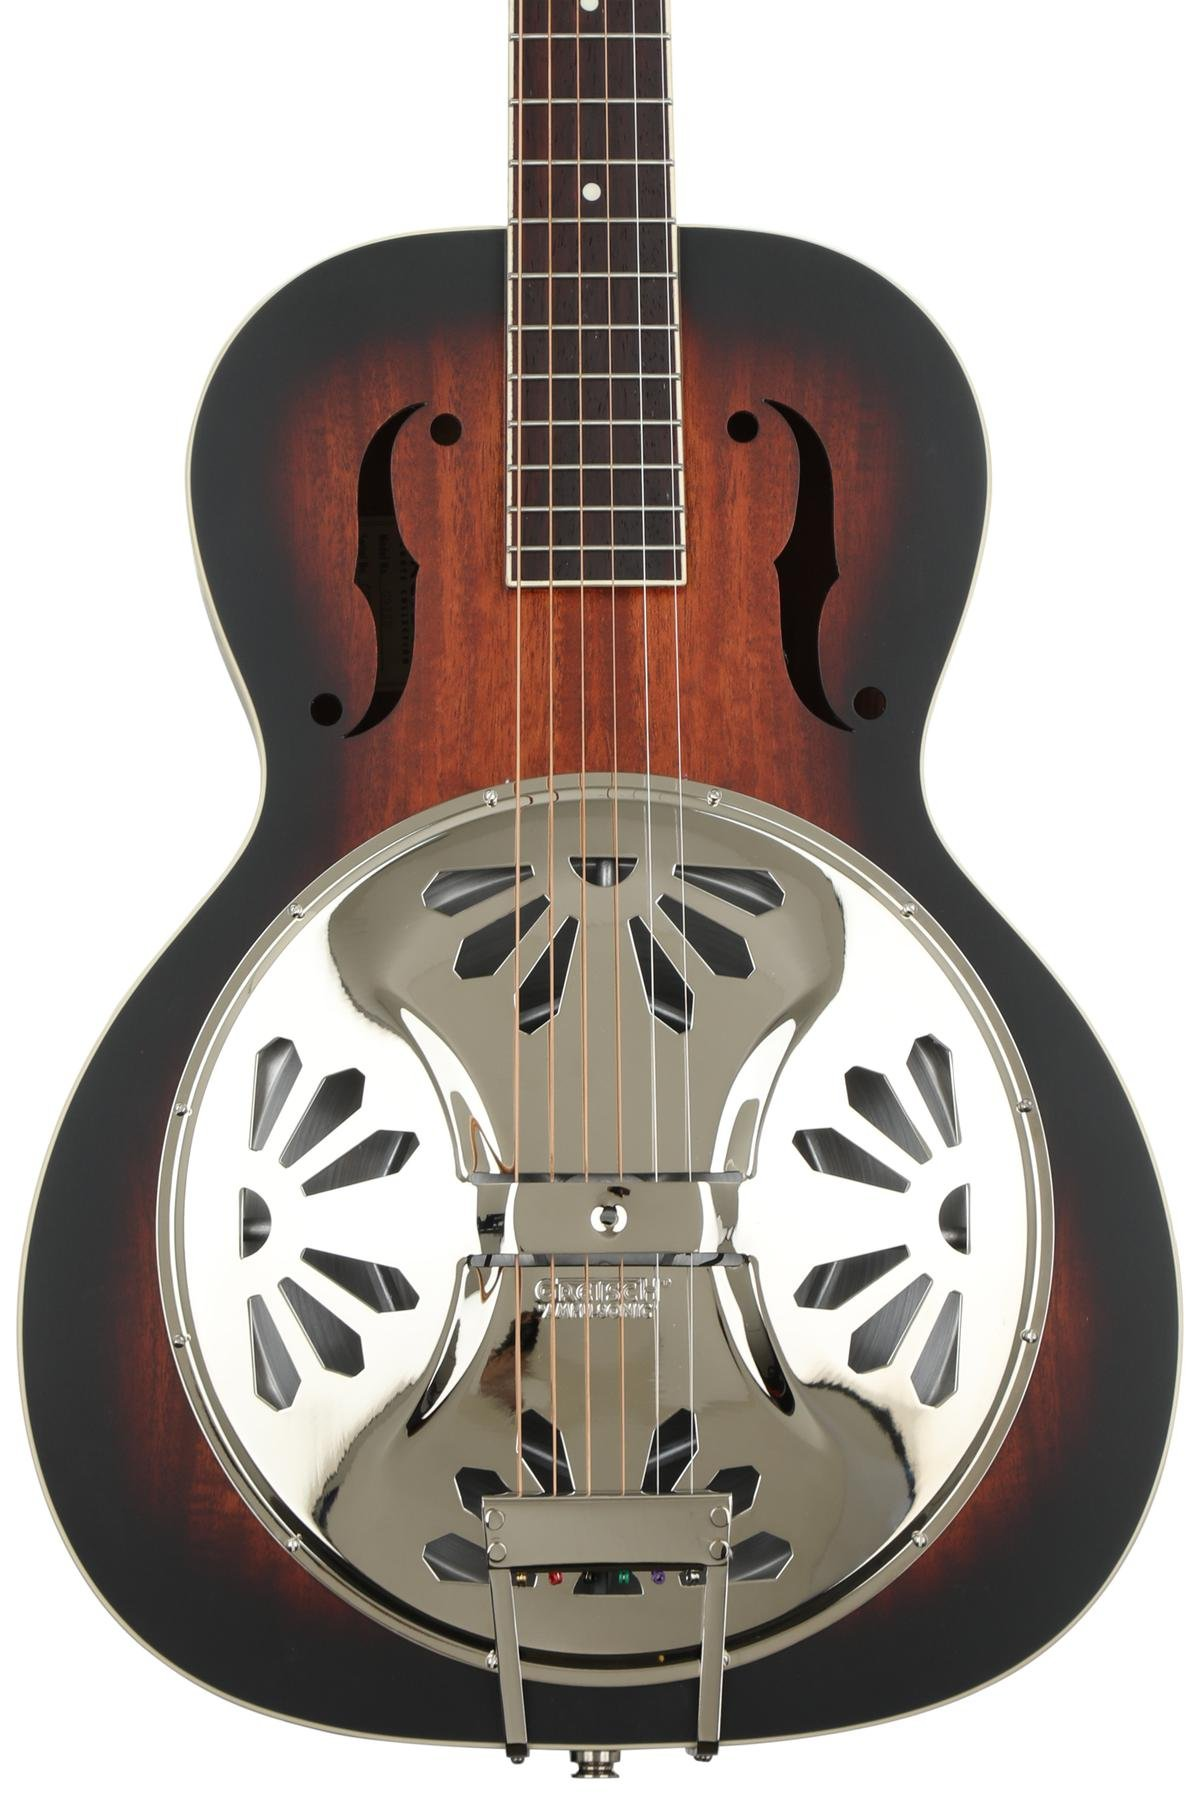 Gretsch G9220 Bobtail Round-neck Mahogany Body Resonator - 2-color  Sunburst, Padauk